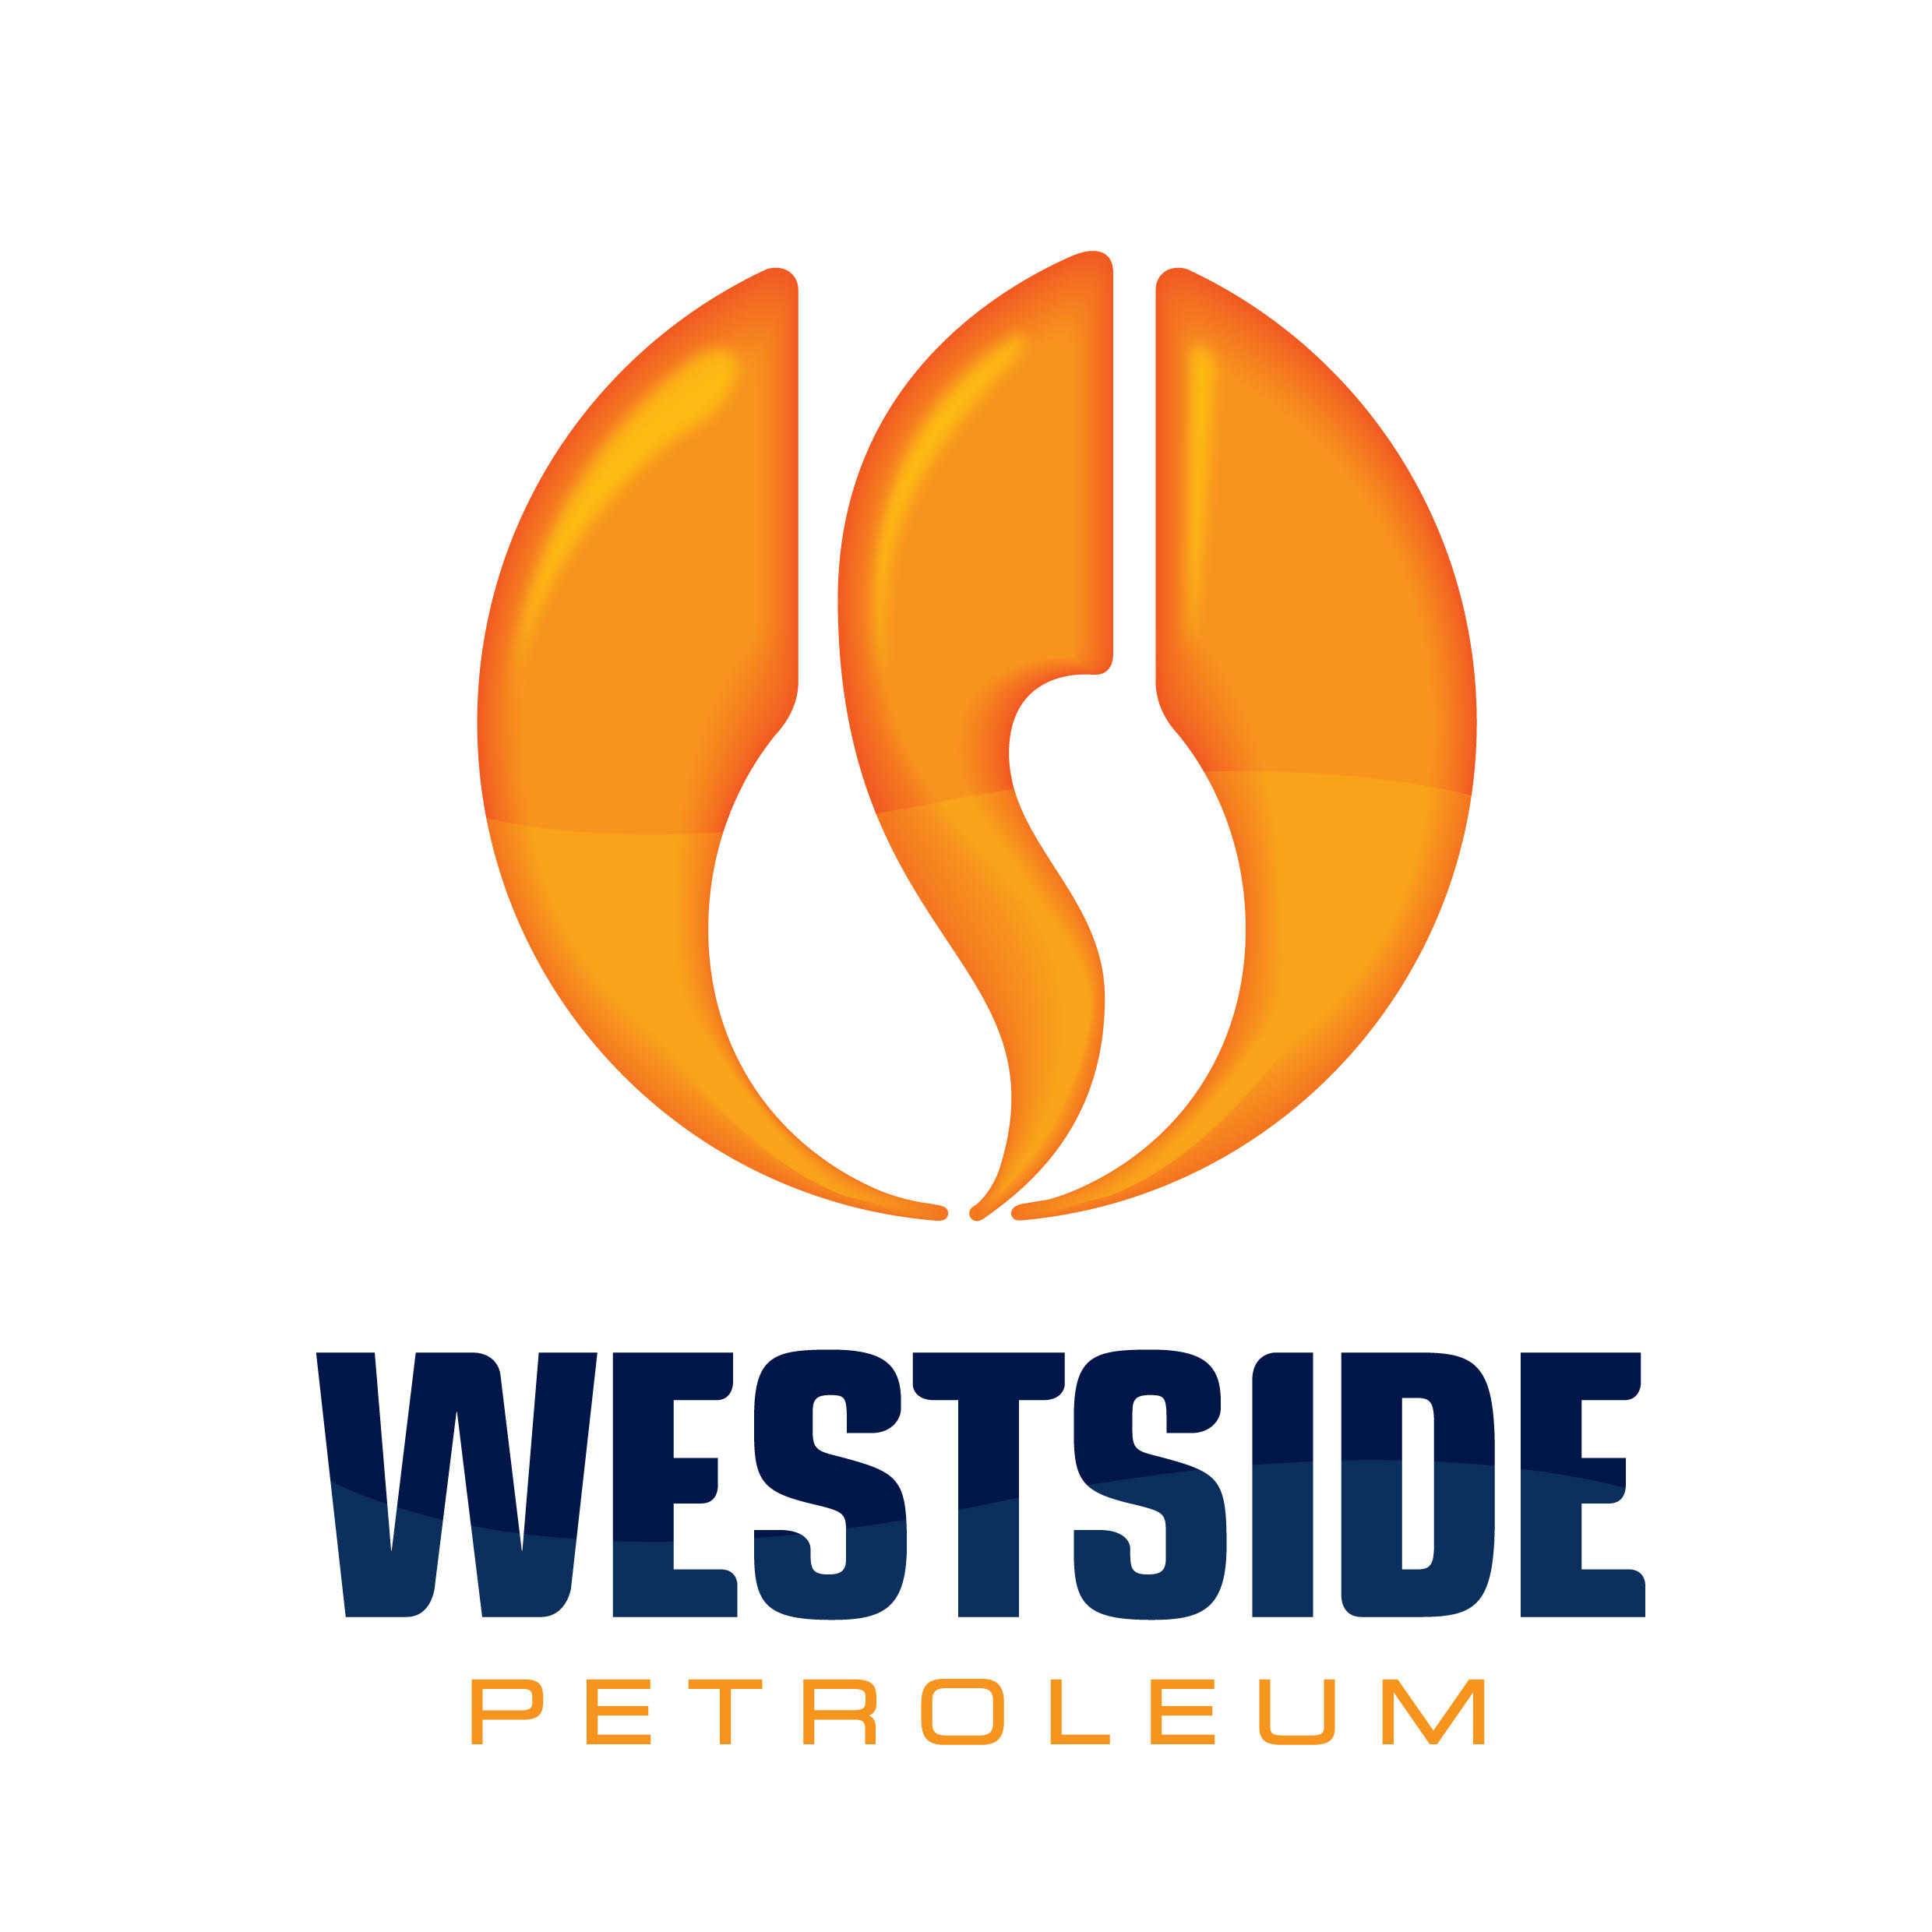 Westside Petroleum